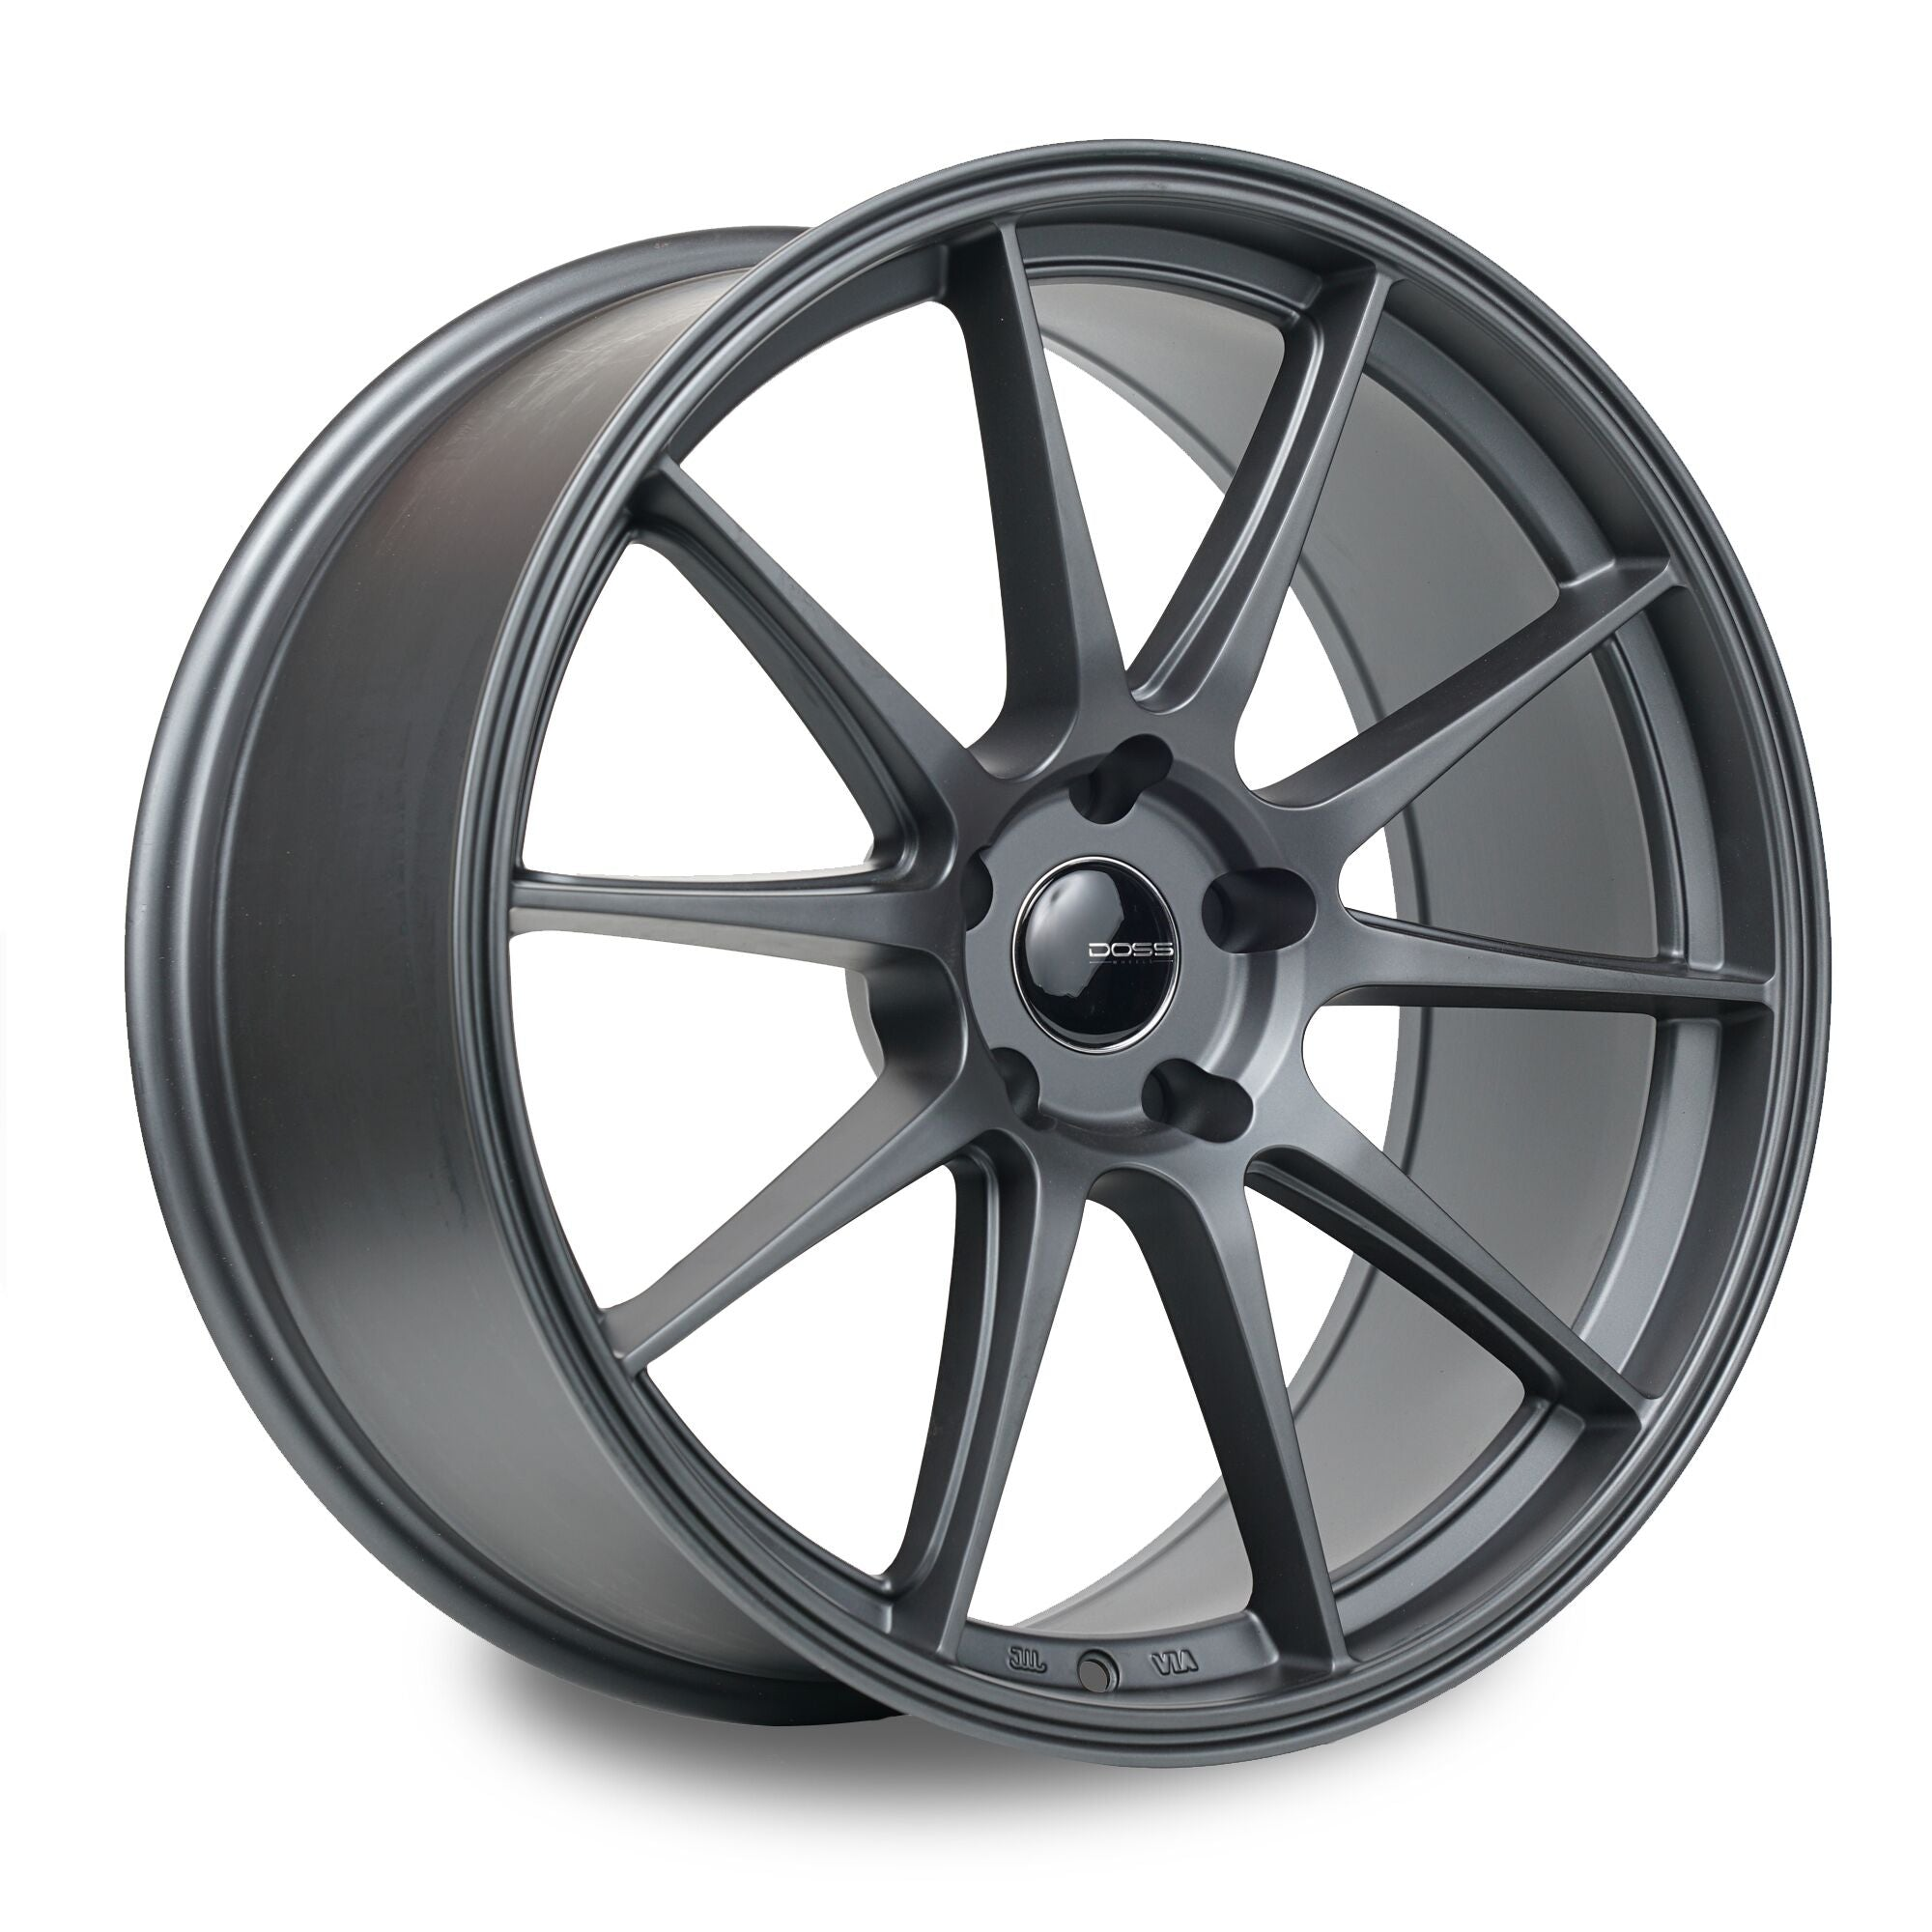 Open Box: (4) RS18 20x9 +20 / 20x10.5 +45 Roto-Forged 2 colors | Ford Mustang S550